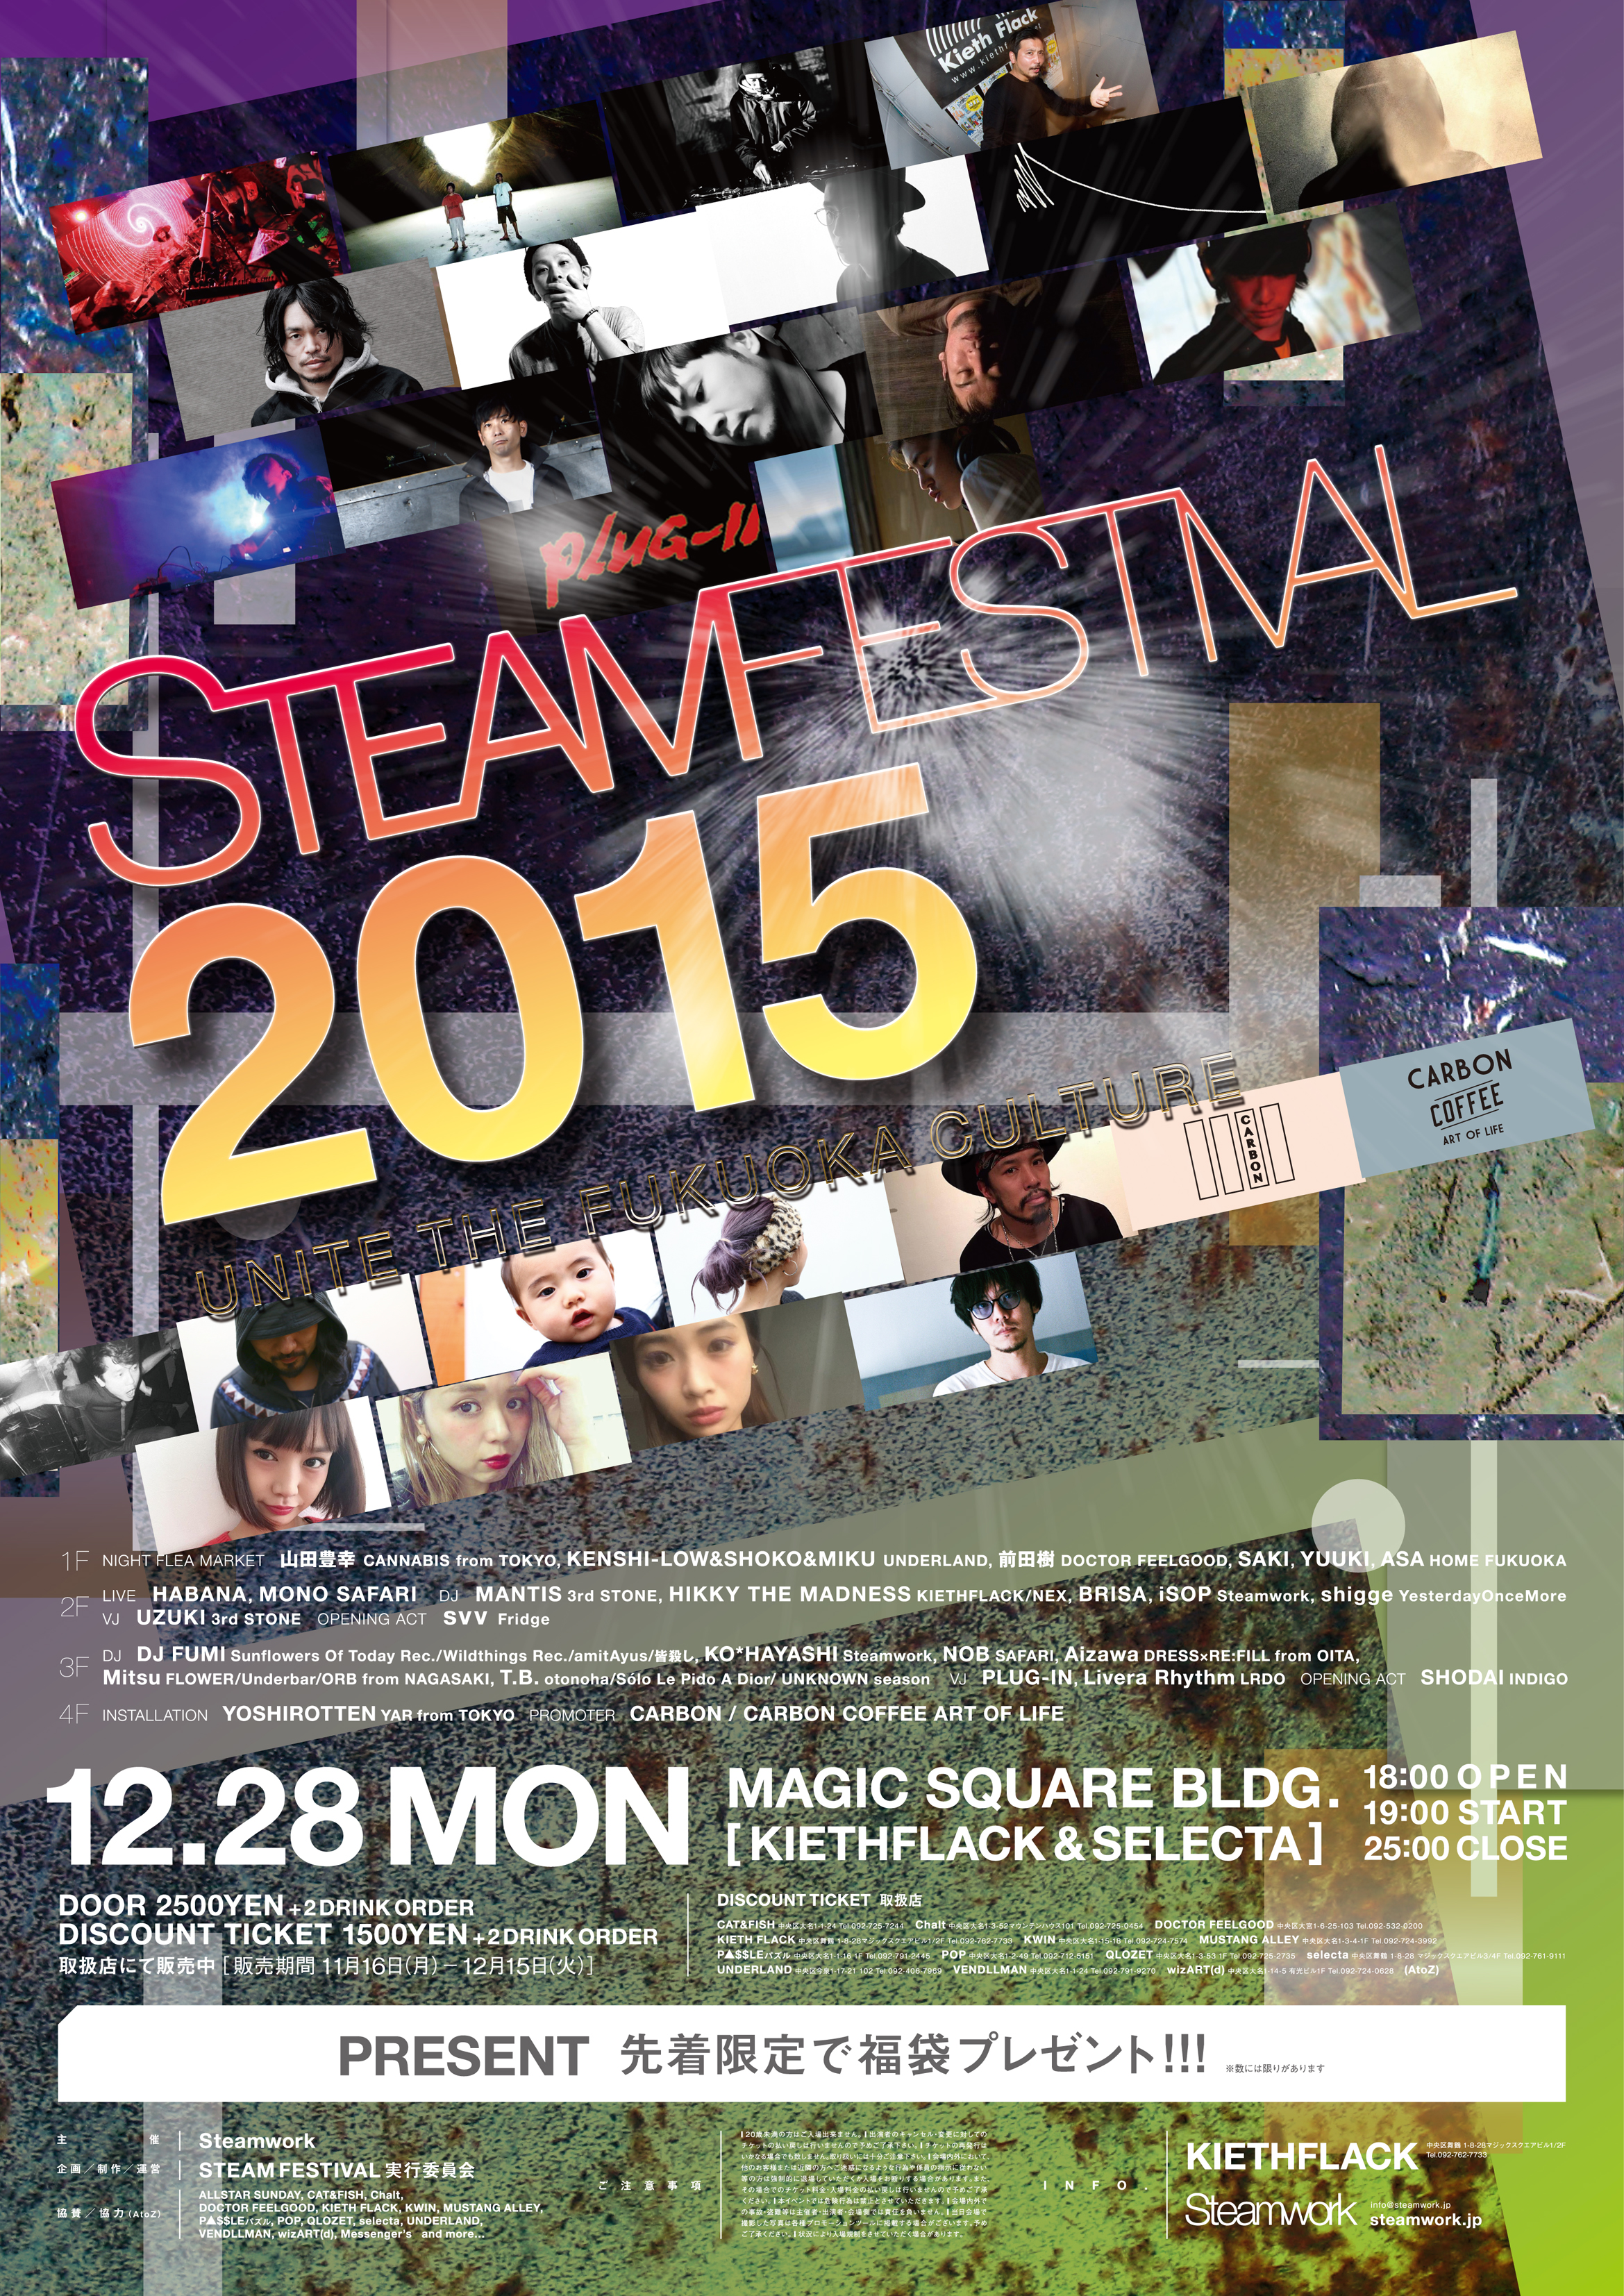 STEAM FESTIVAL 2015 〜Unite the FUKUOKA Culture〜